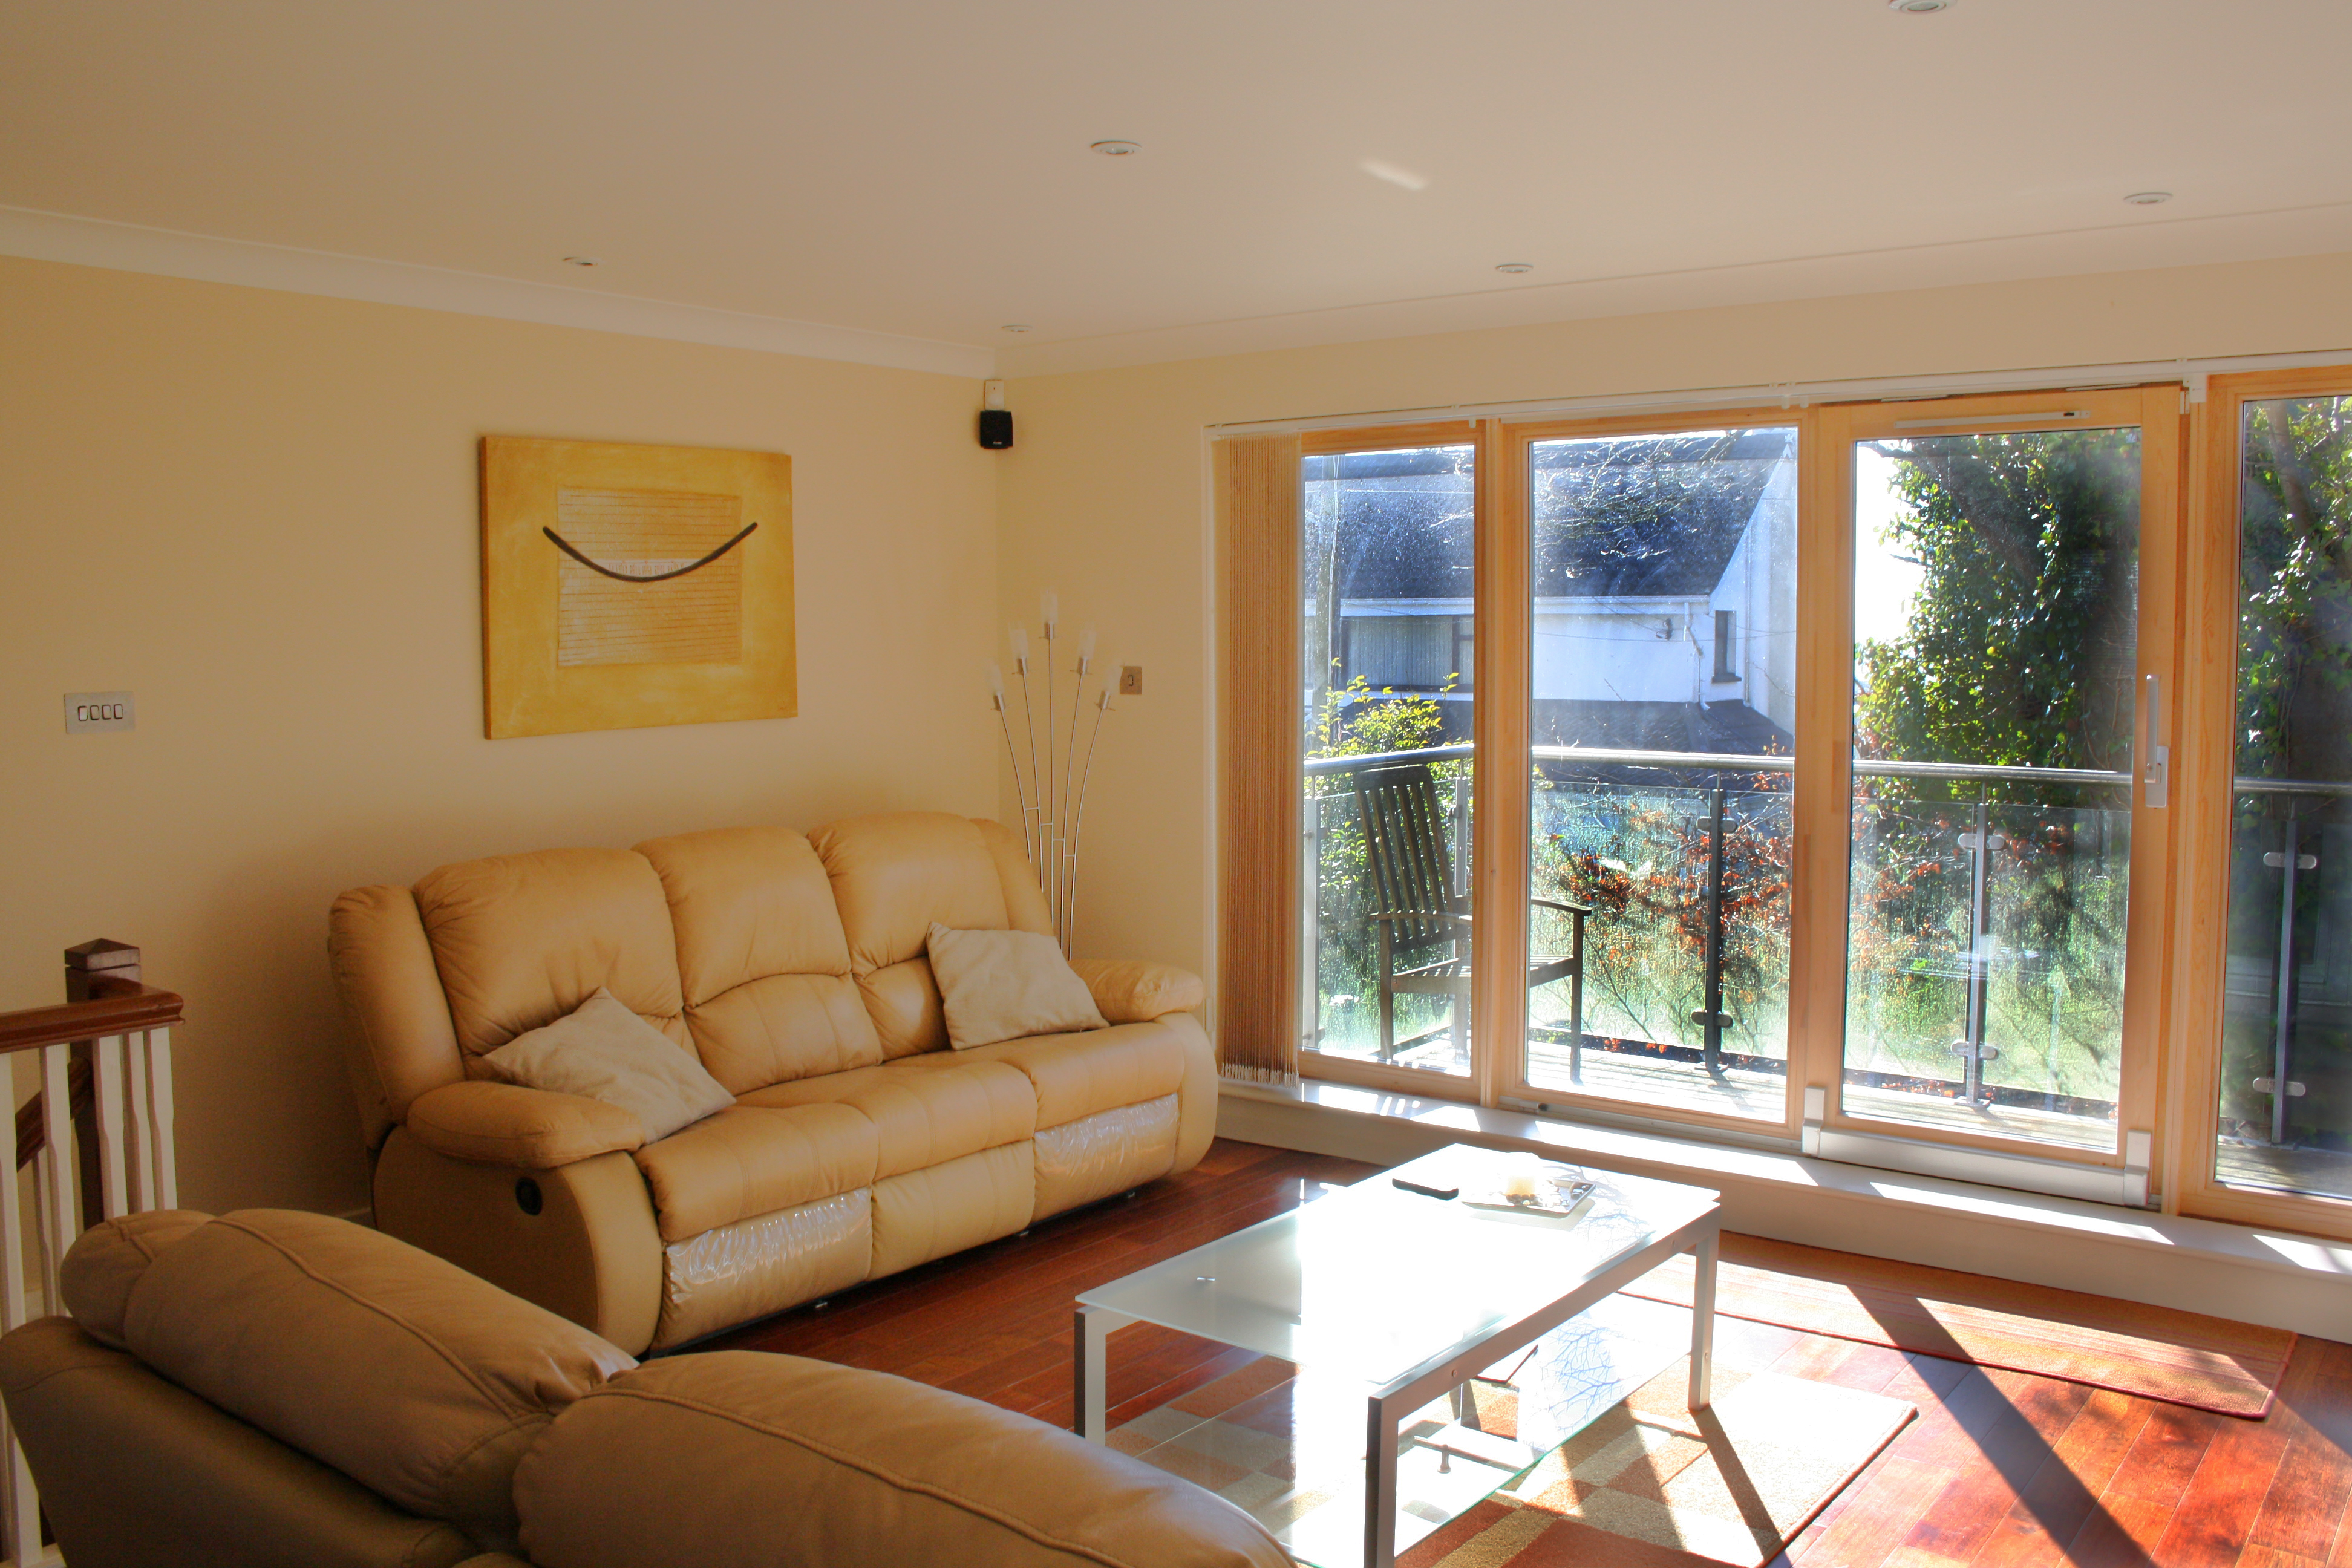 Captivating Apartment To Rent Galway